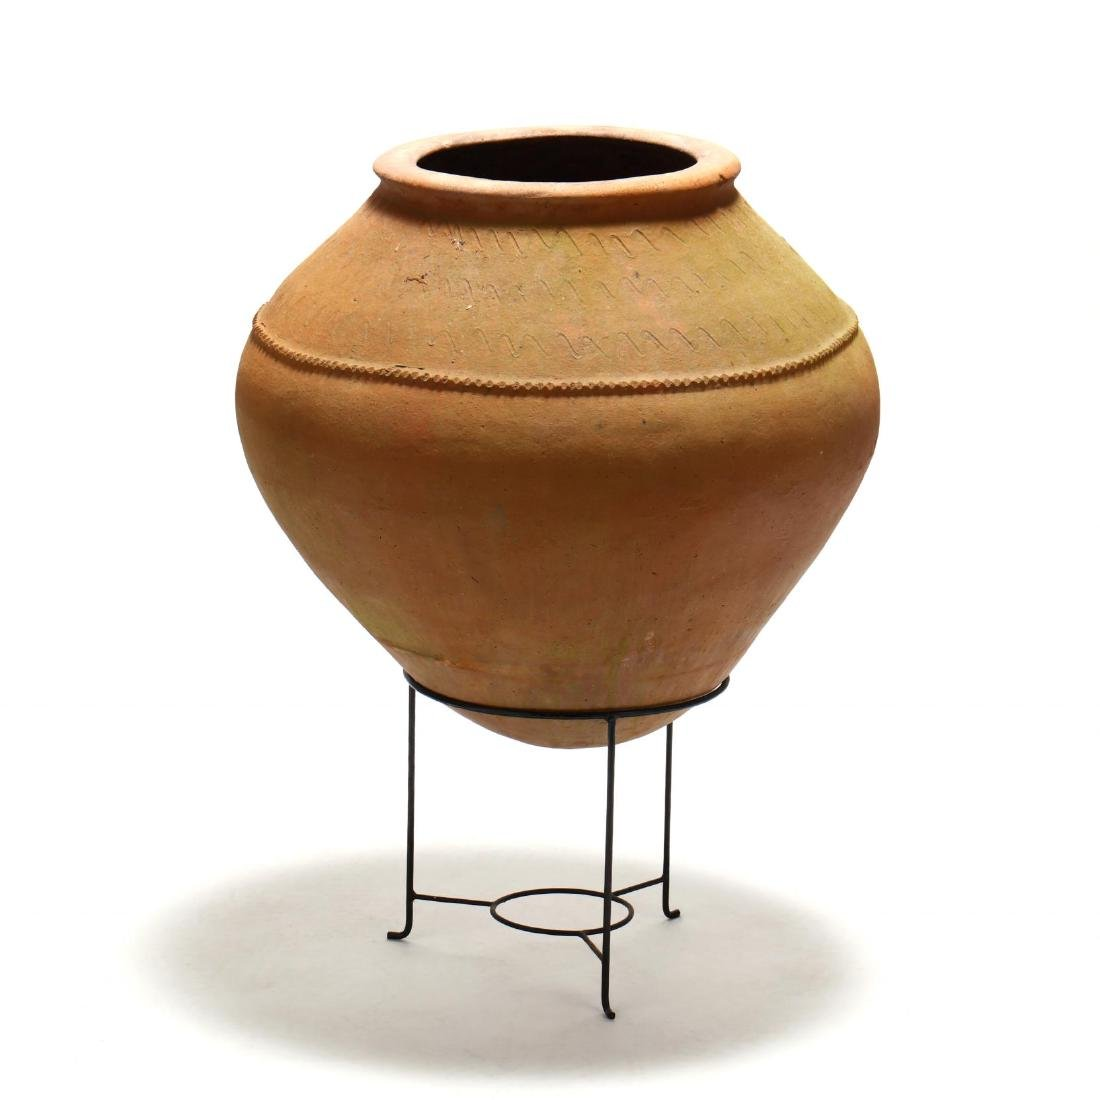 Cypriot Traditional Terracotta Storage Jar - 4